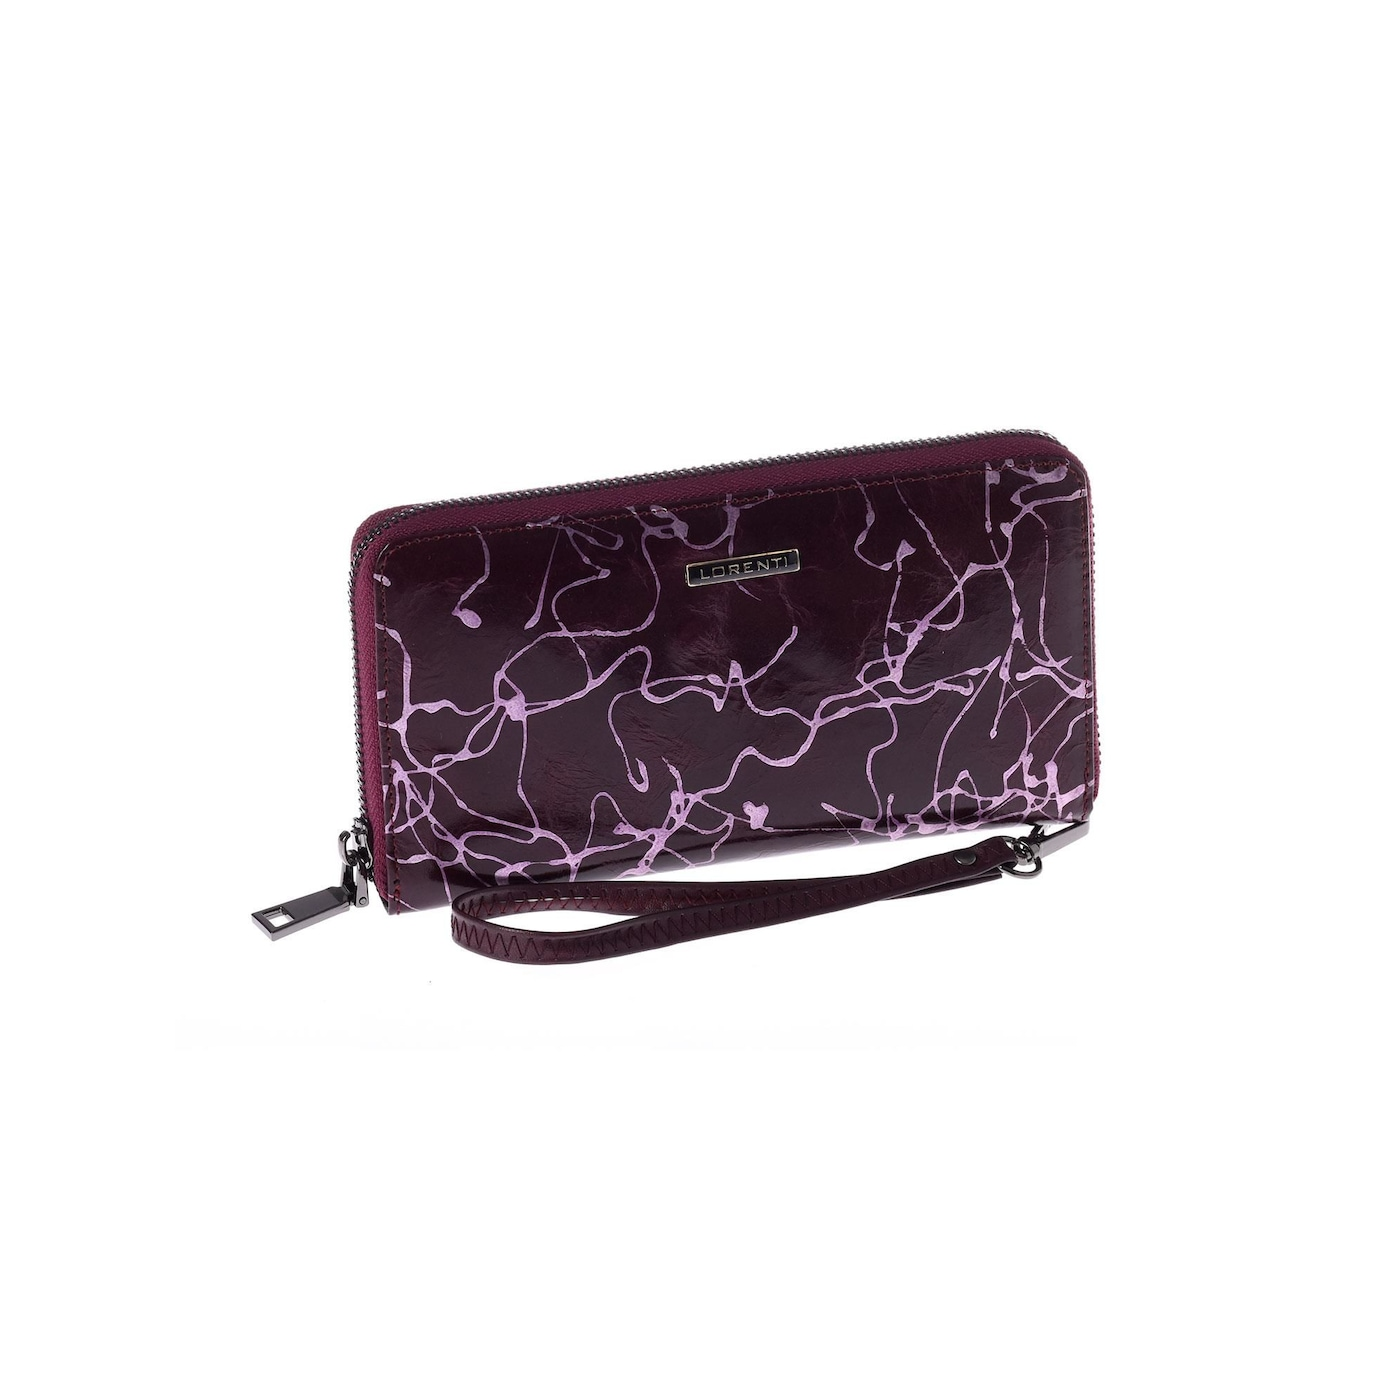 Purple leather wallet with a handle